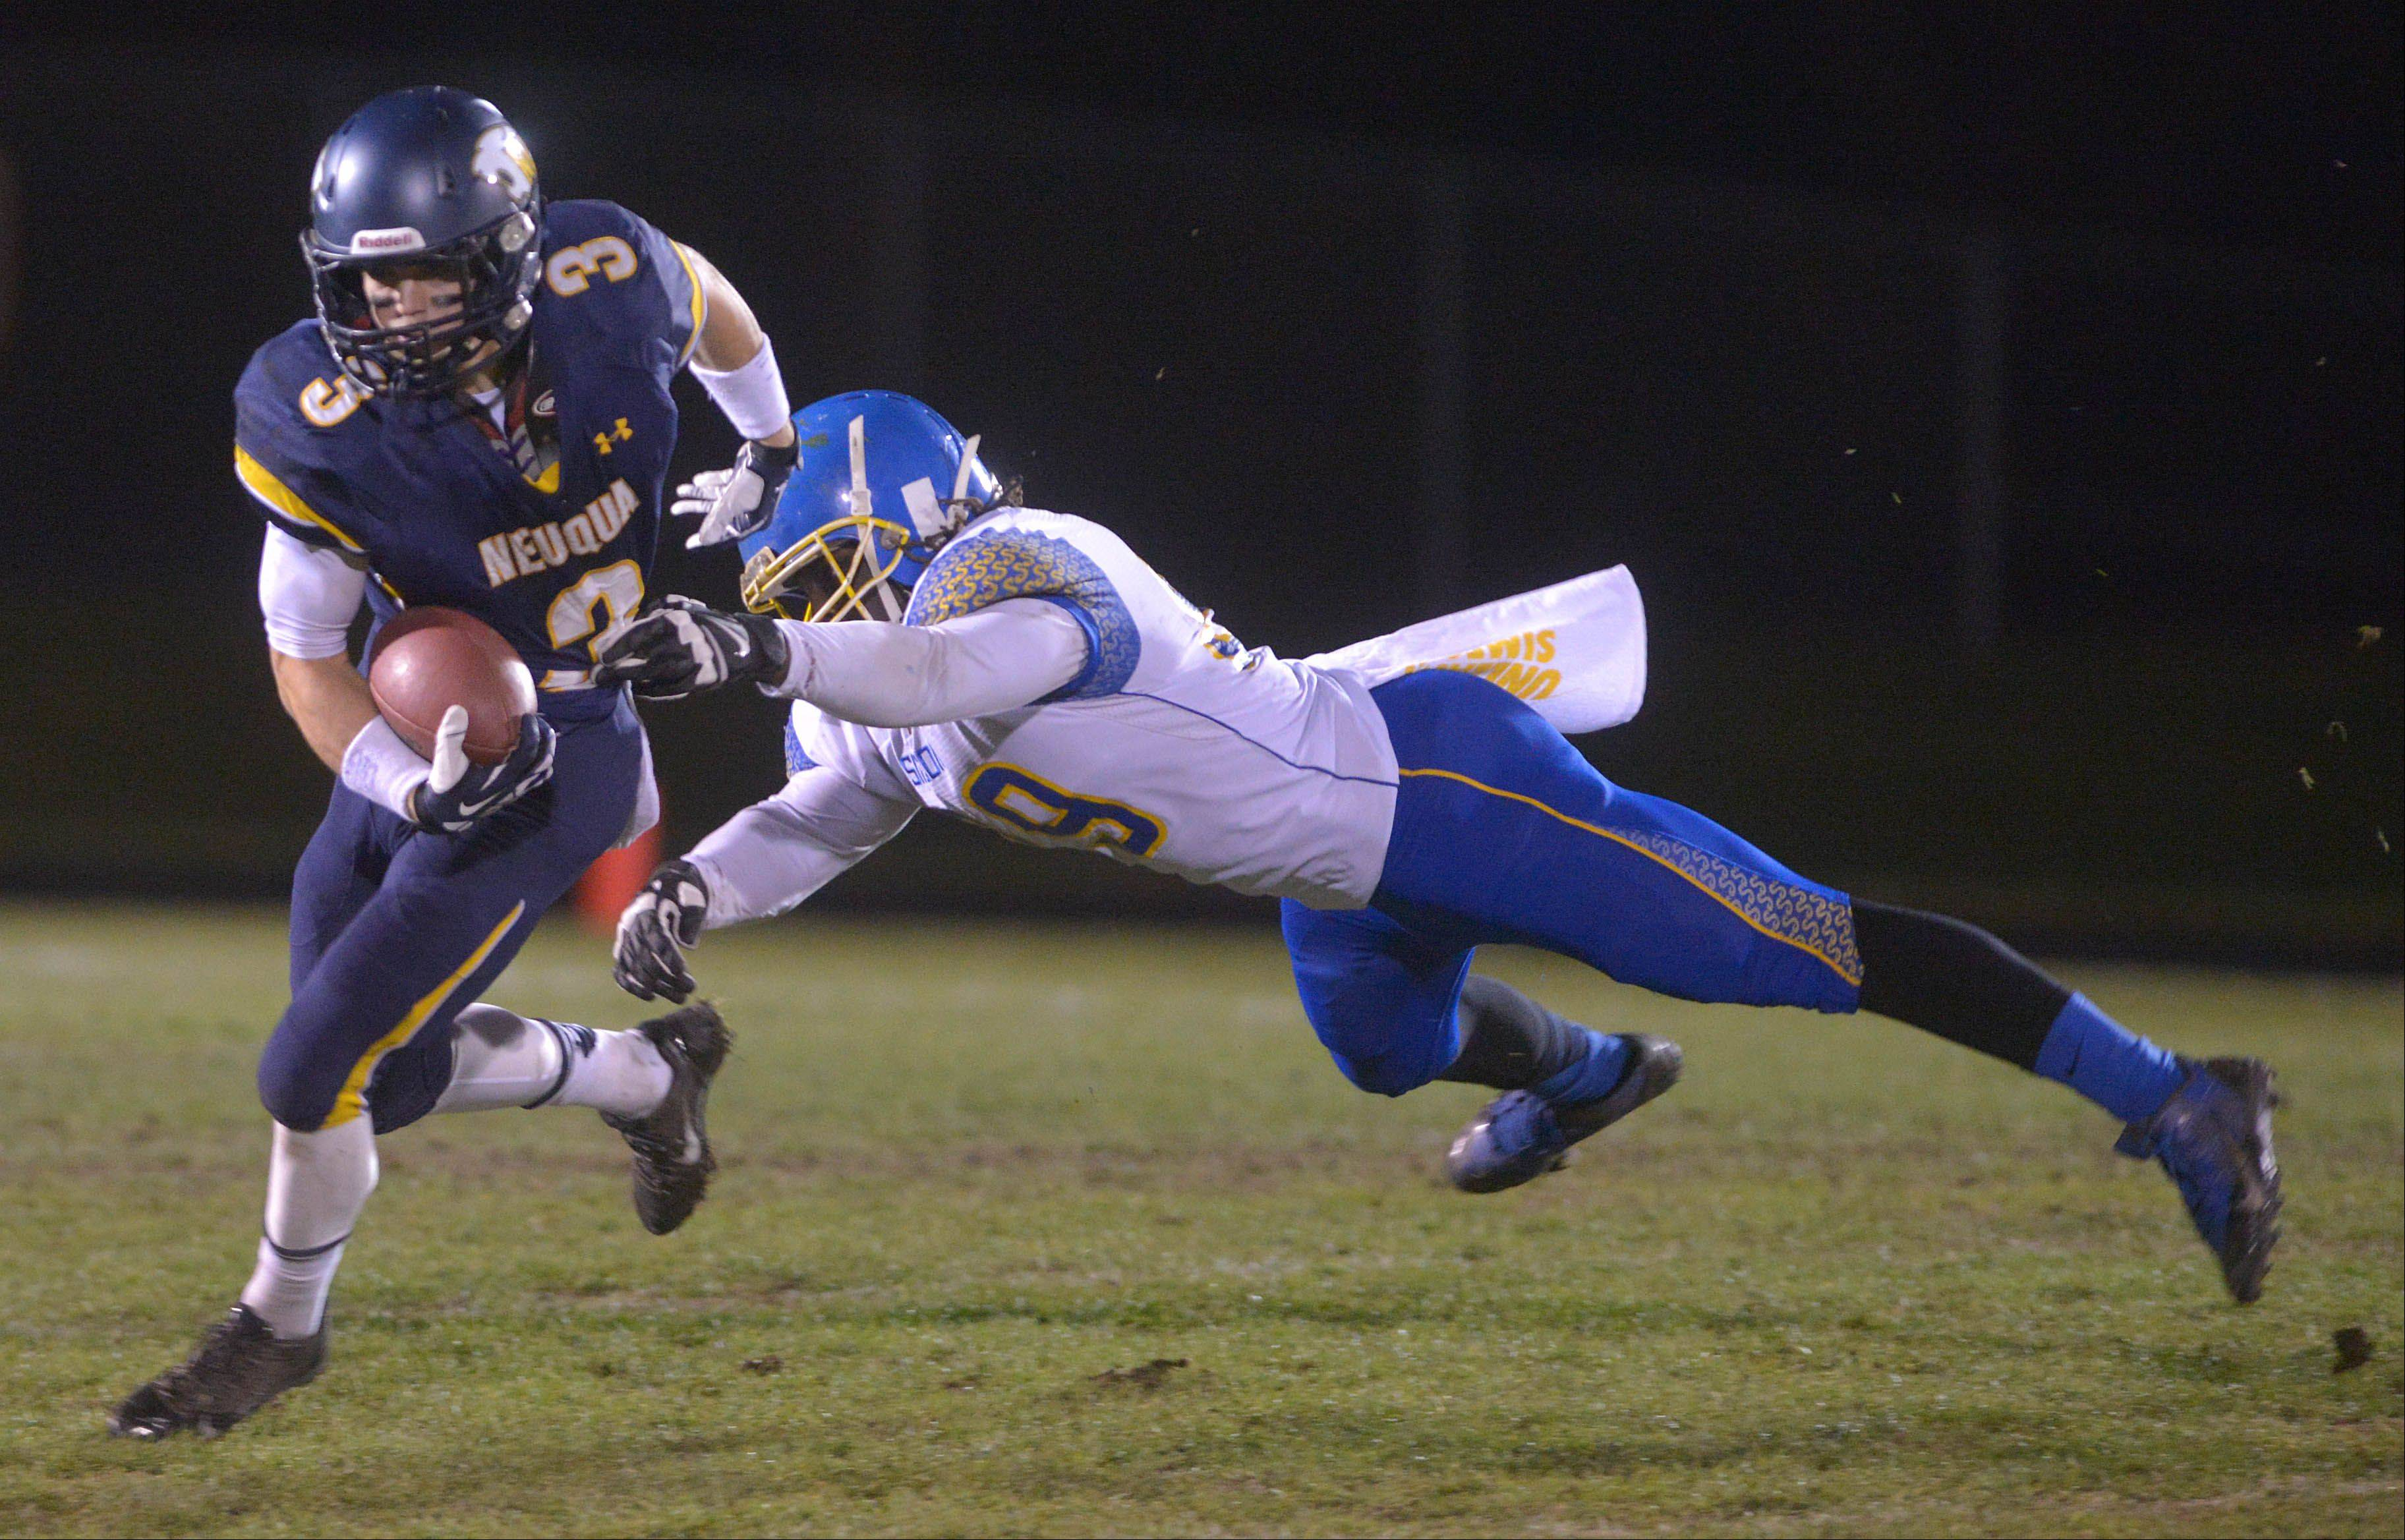 Neuqua Valley's Mikey Dudek gets past Simeon's Karlin Entoe Saturday's football playoff game.